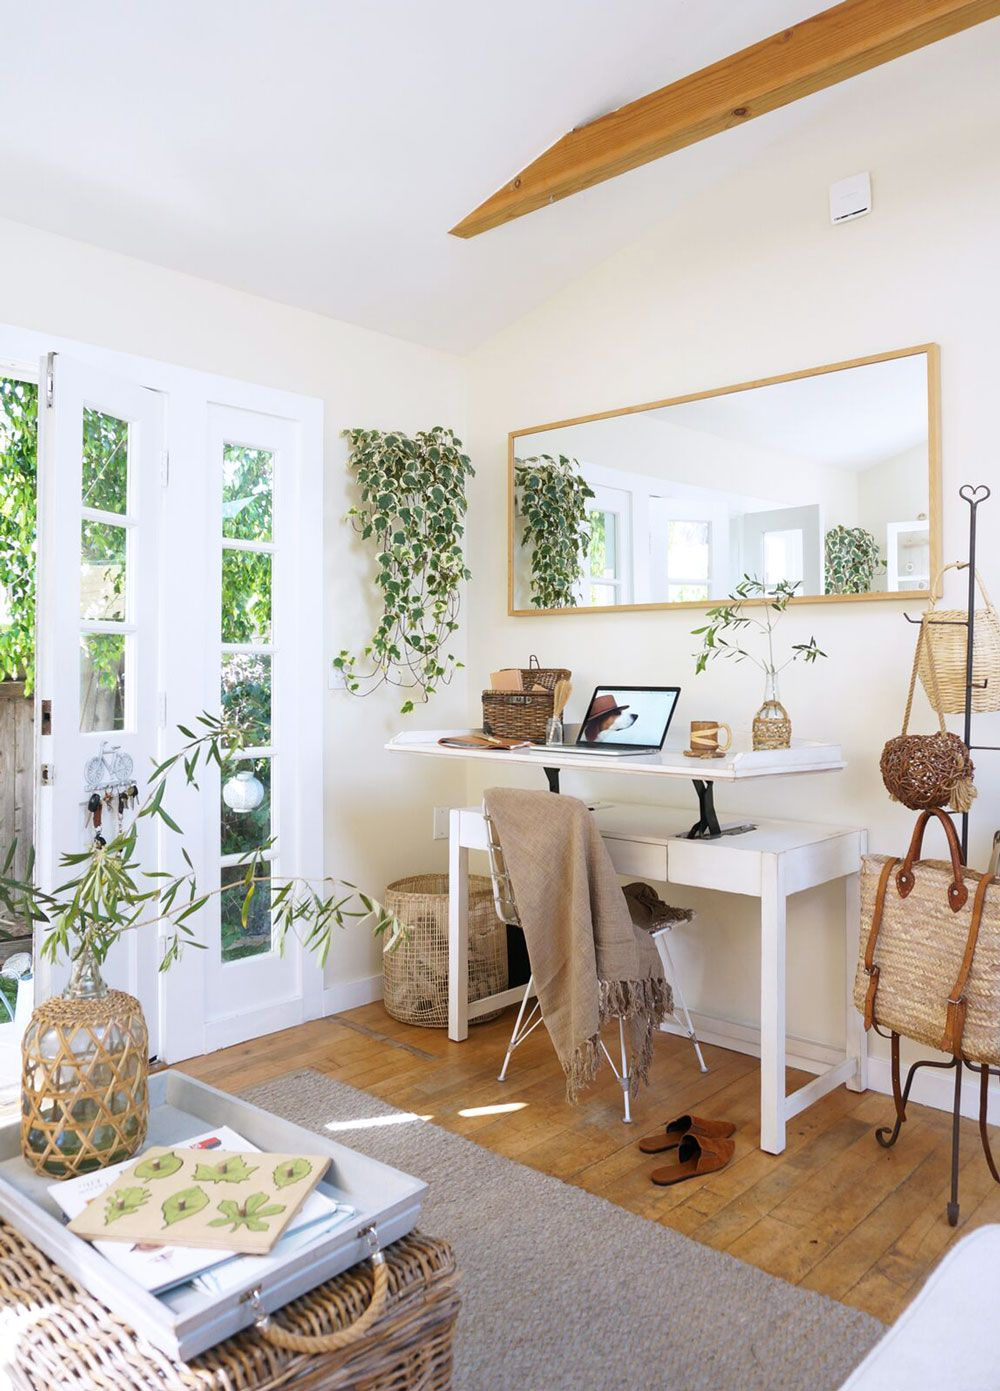 Good Reads Small Space Style Sfgirlbybay Small Space Li